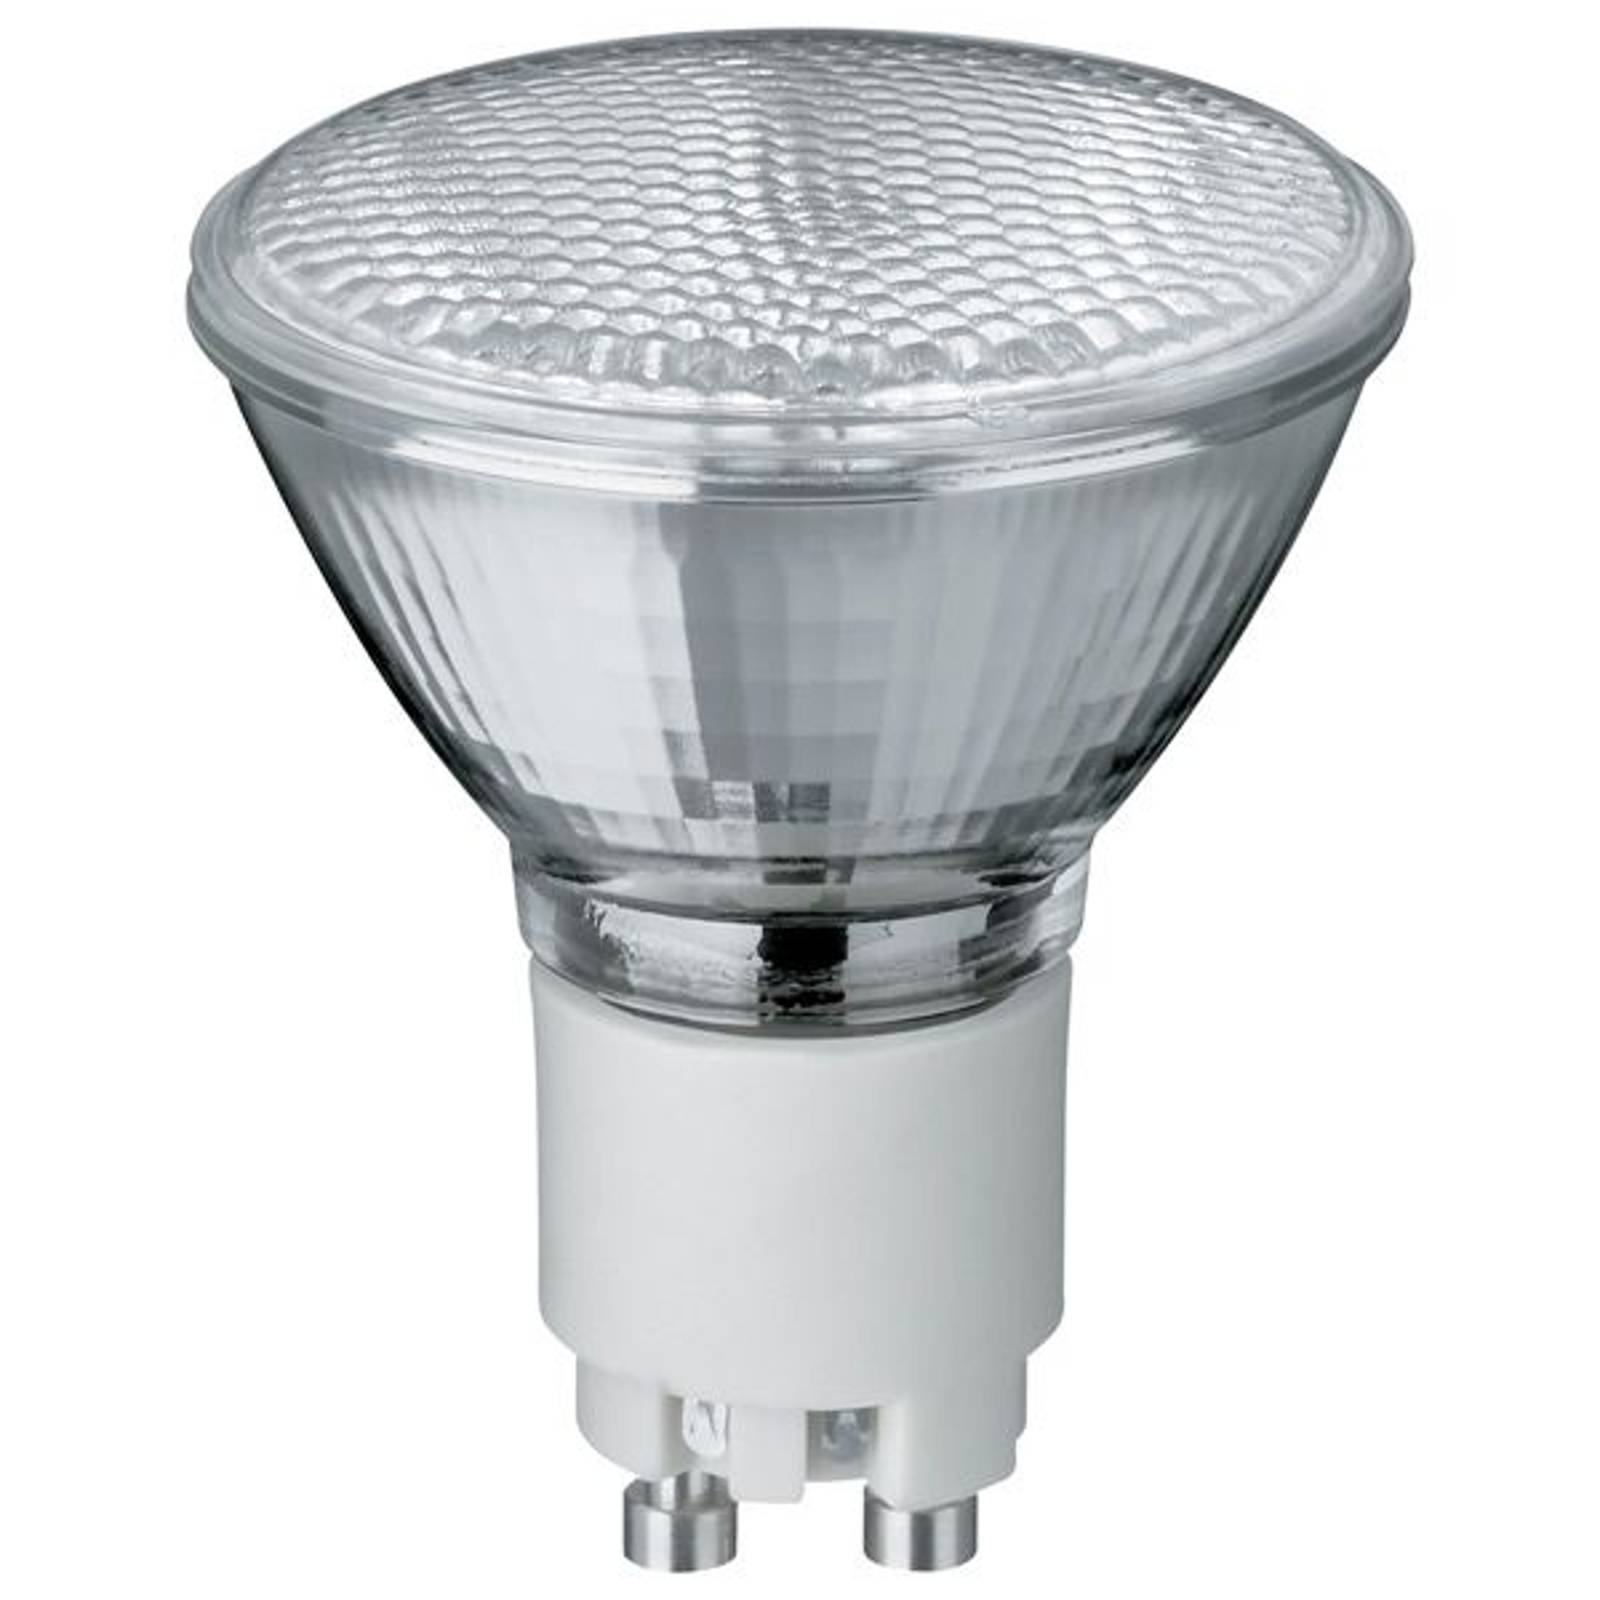 GX10 20W 25° discharge bulb Mastercolor CDM-R from Philips